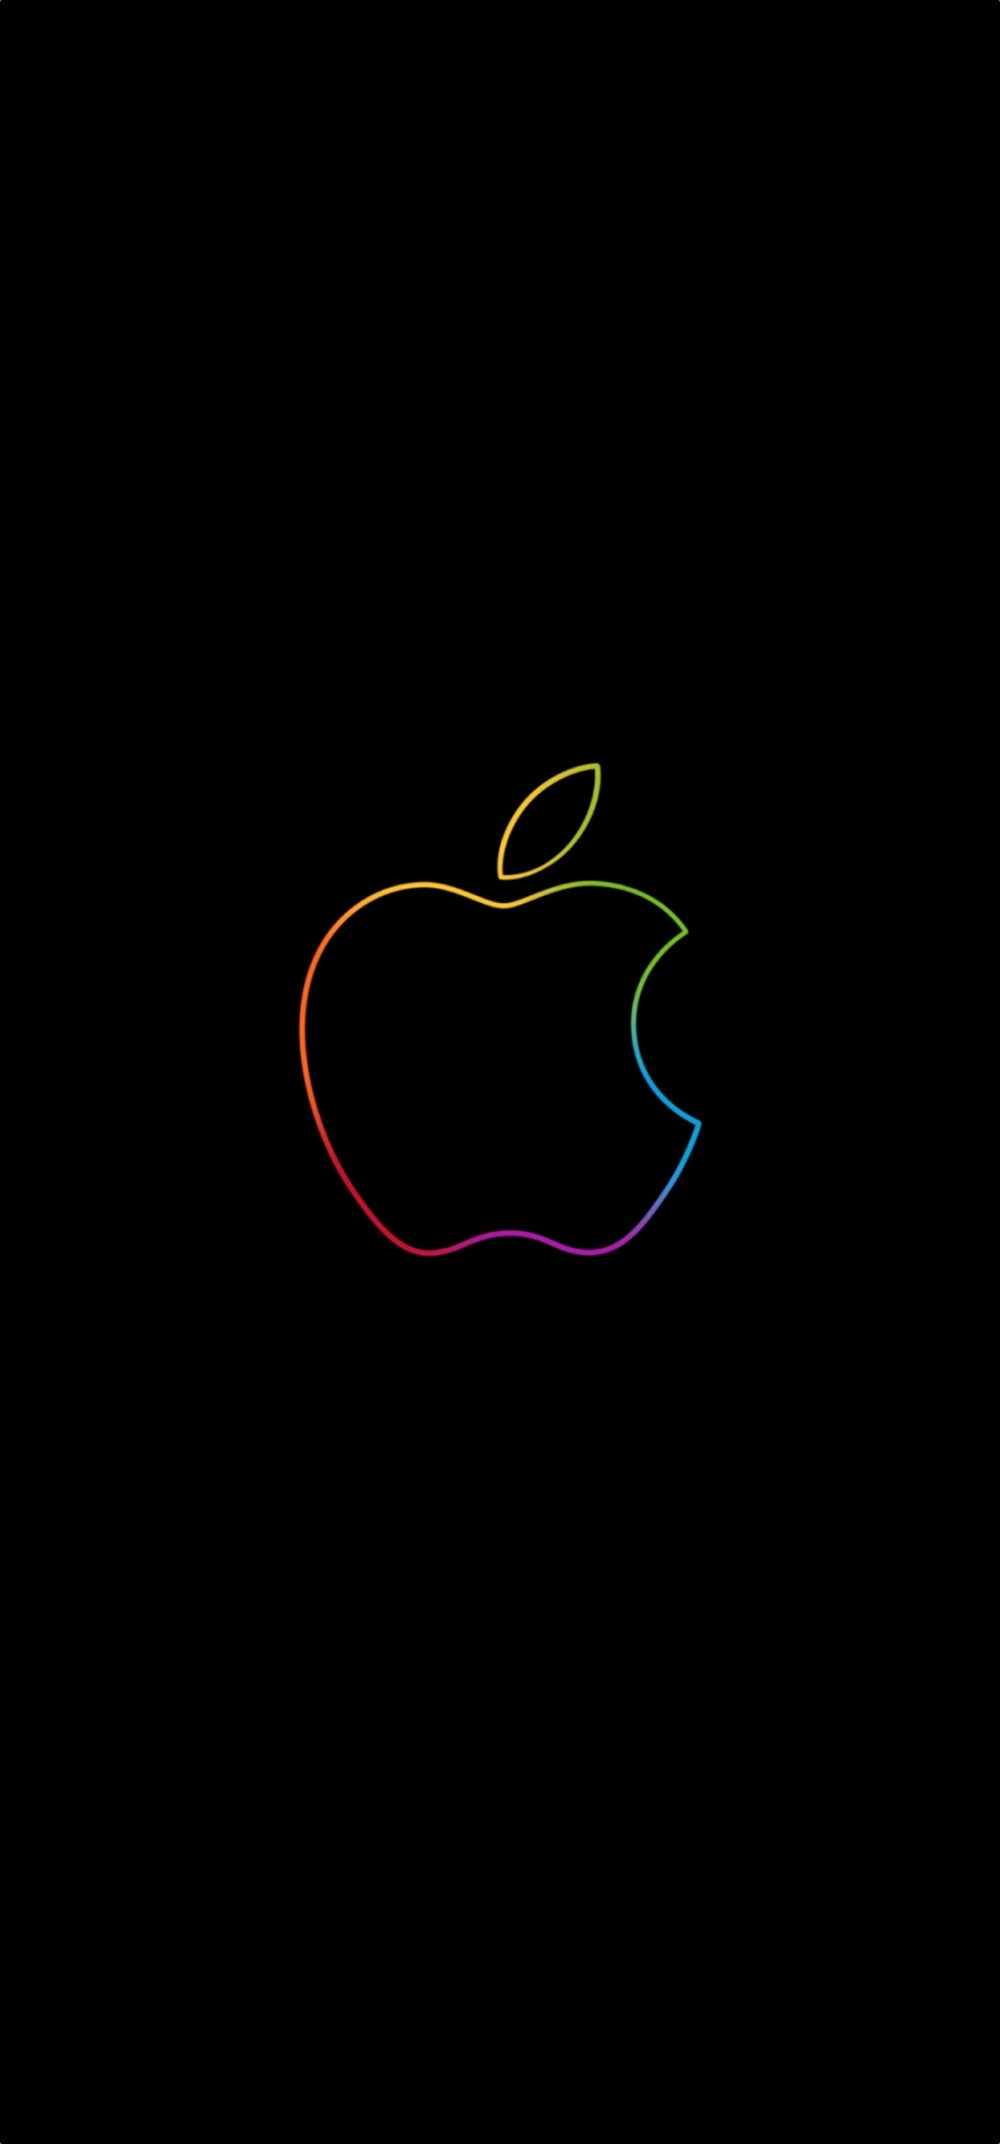 b1efb3eb1c2 Download Apple Store Wallpapers Featuring The Colorful Apple Logo ...